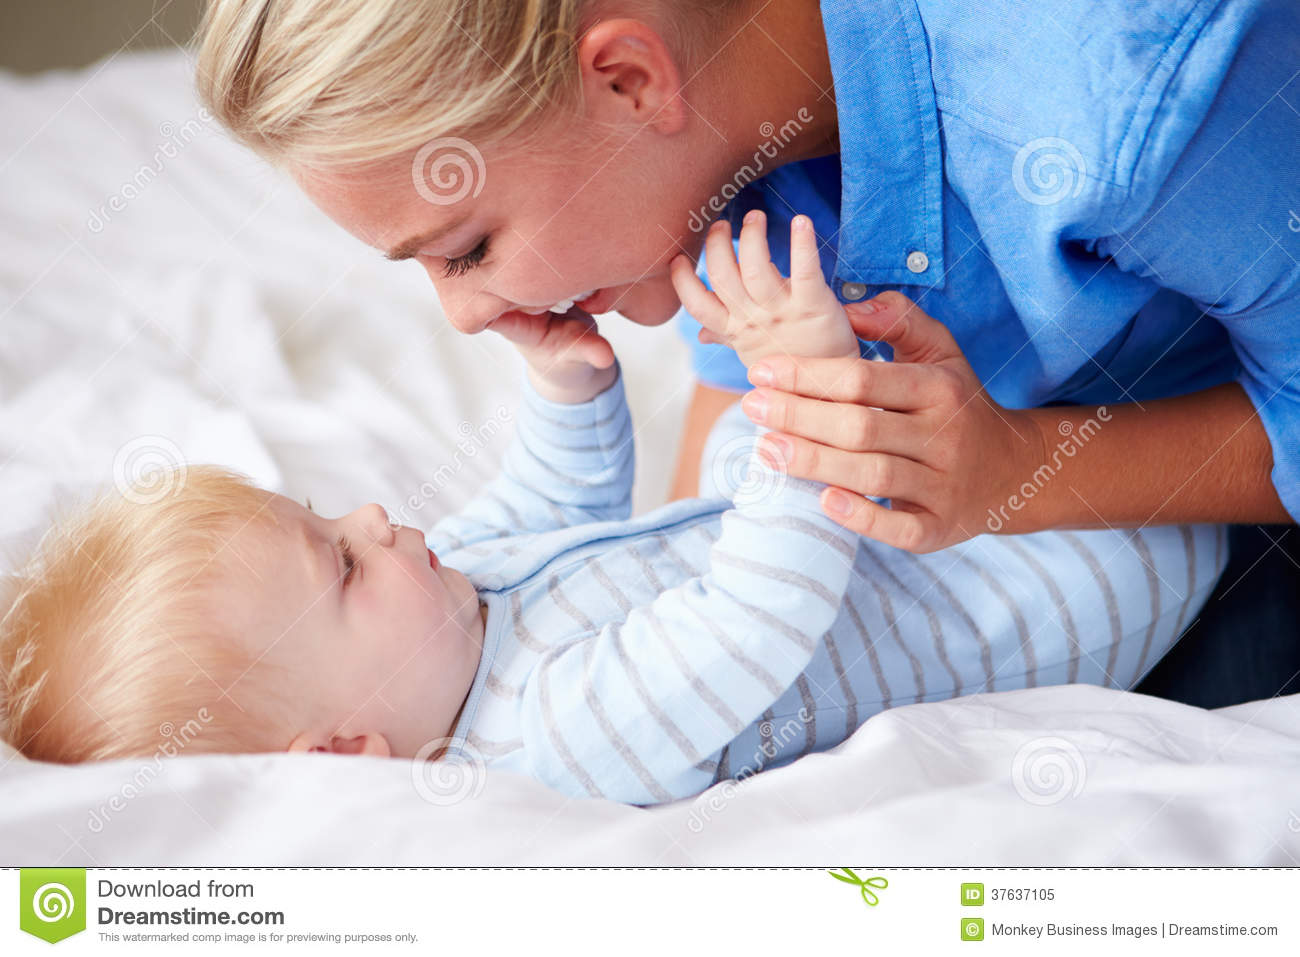 mother playing with baby son as they lie in bed together royalty free stock photo image 37637105. Black Bedroom Furniture Sets. Home Design Ideas